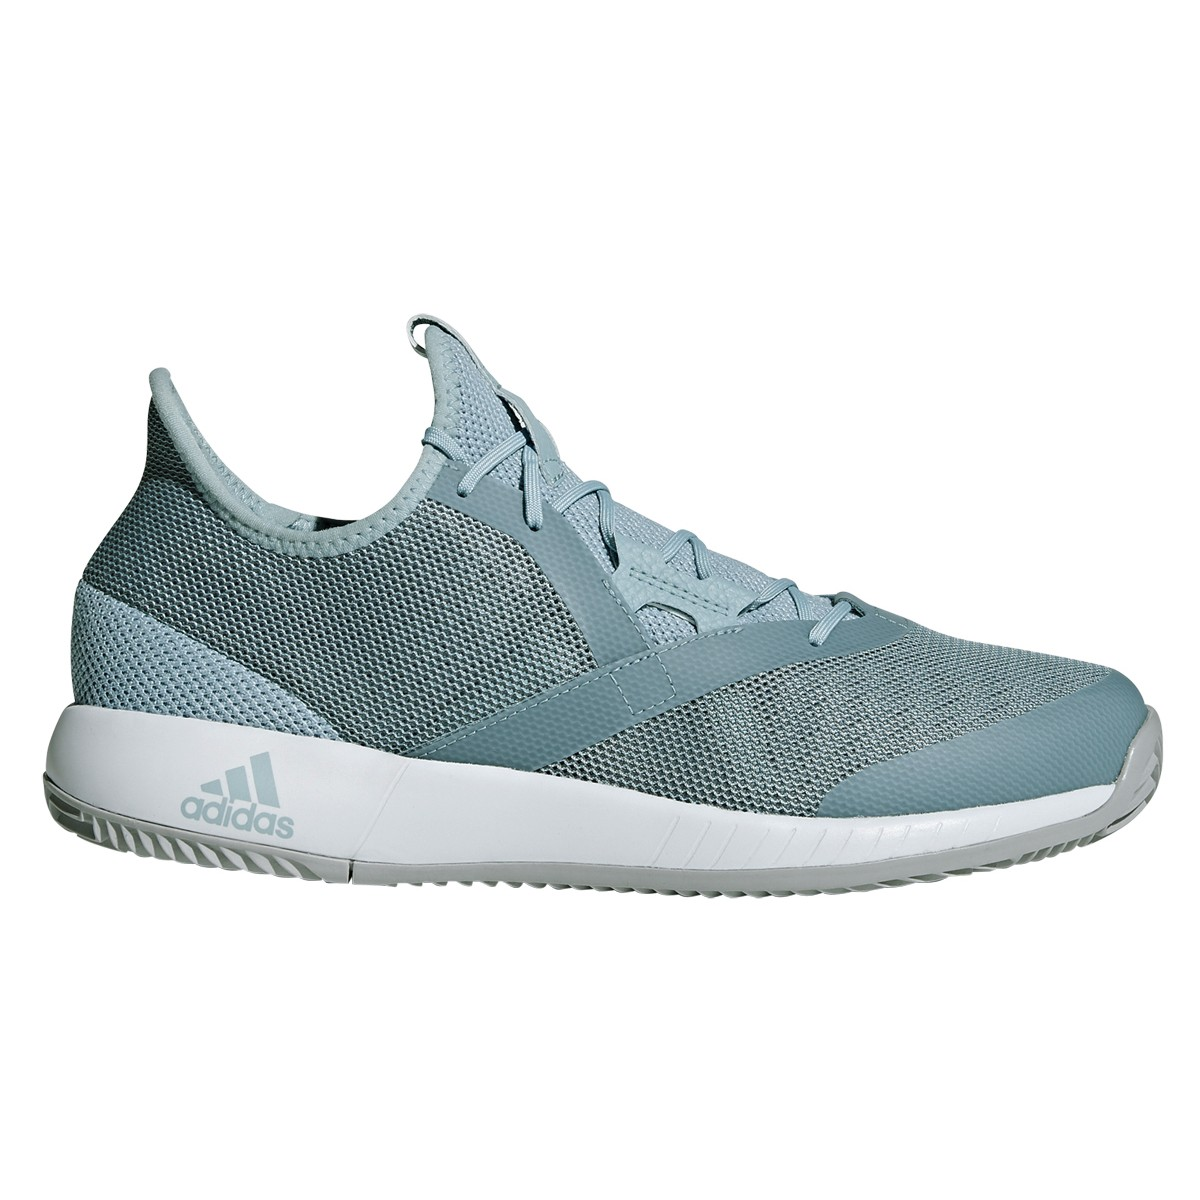 Chaussures adidas adizero defiant bounce terre battue